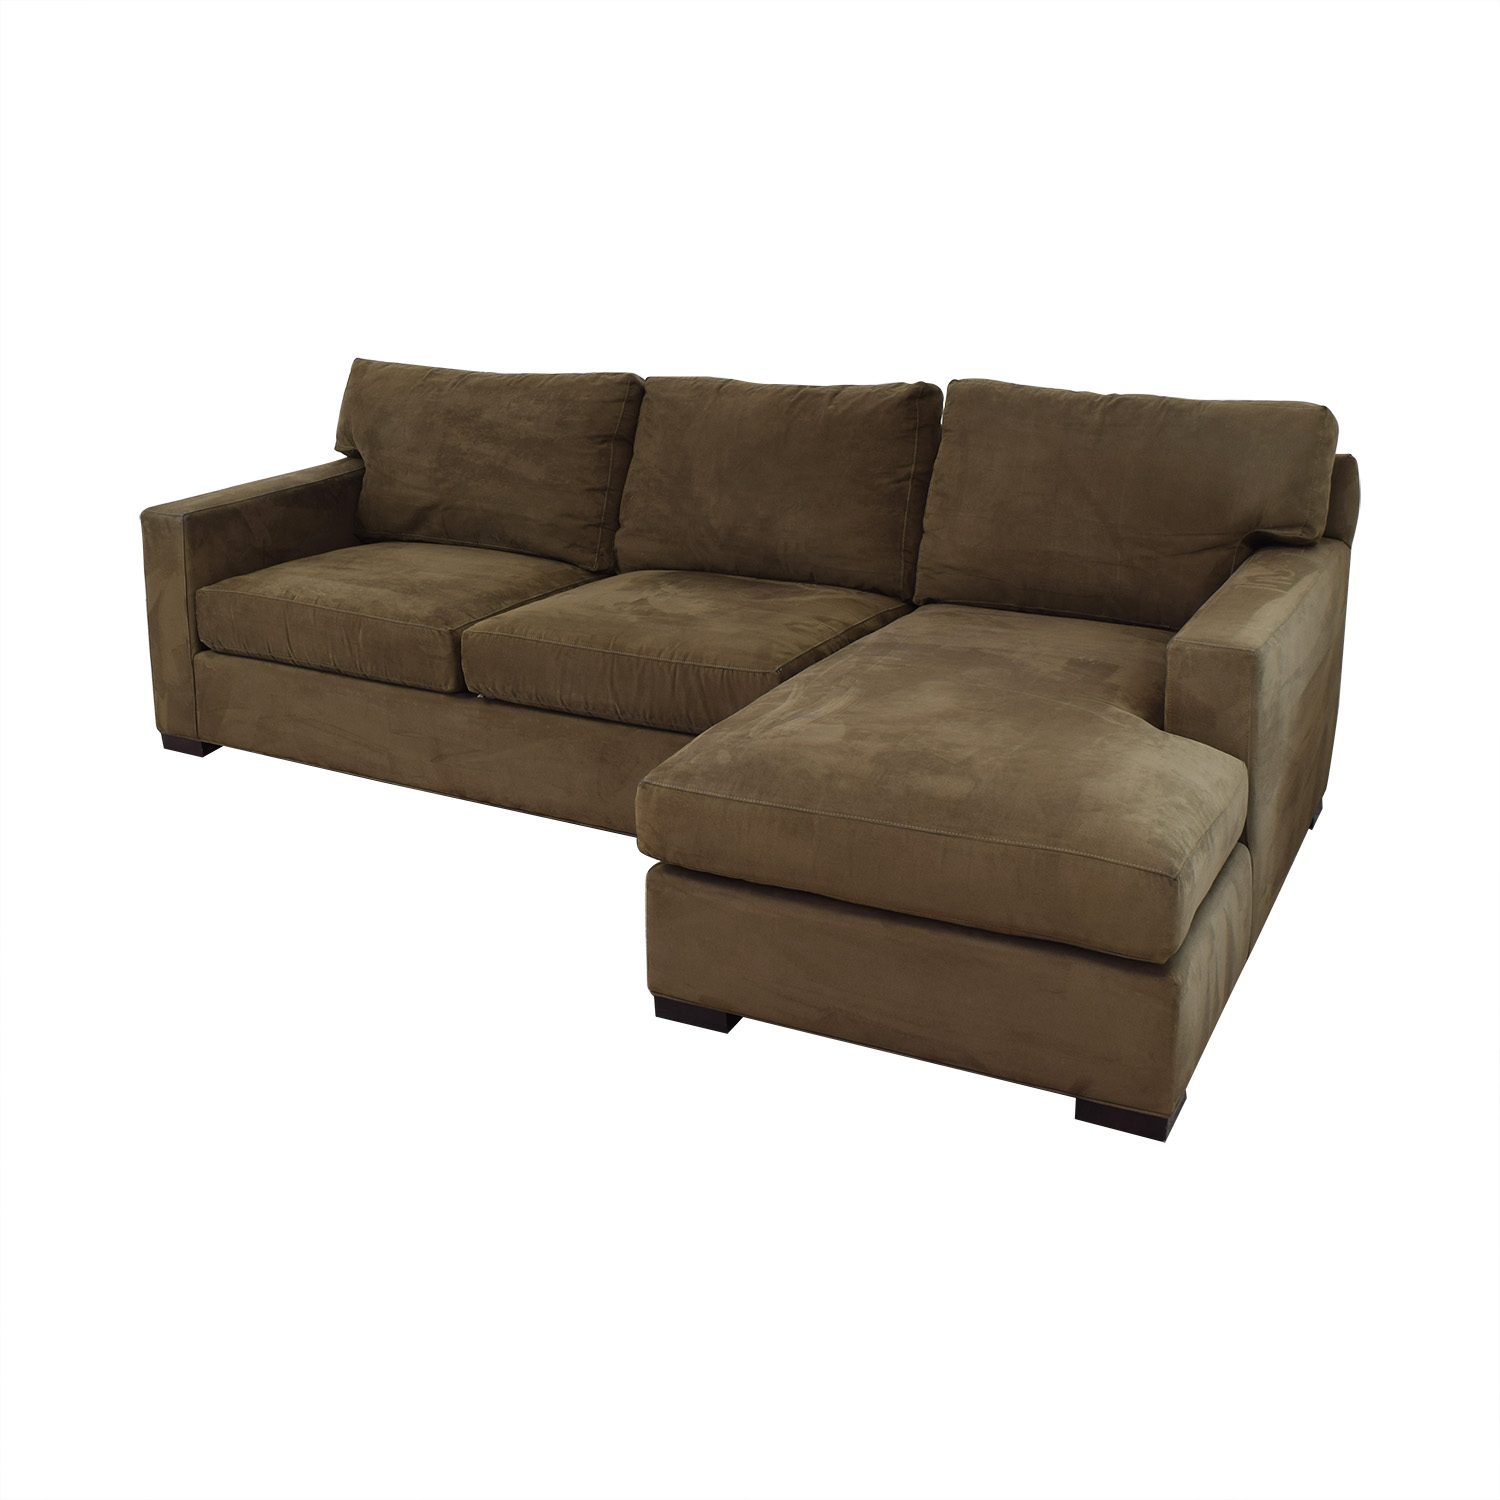 buy Crate & Barrel Sectional Sofa with Chaise Crate & Barrel Sofas